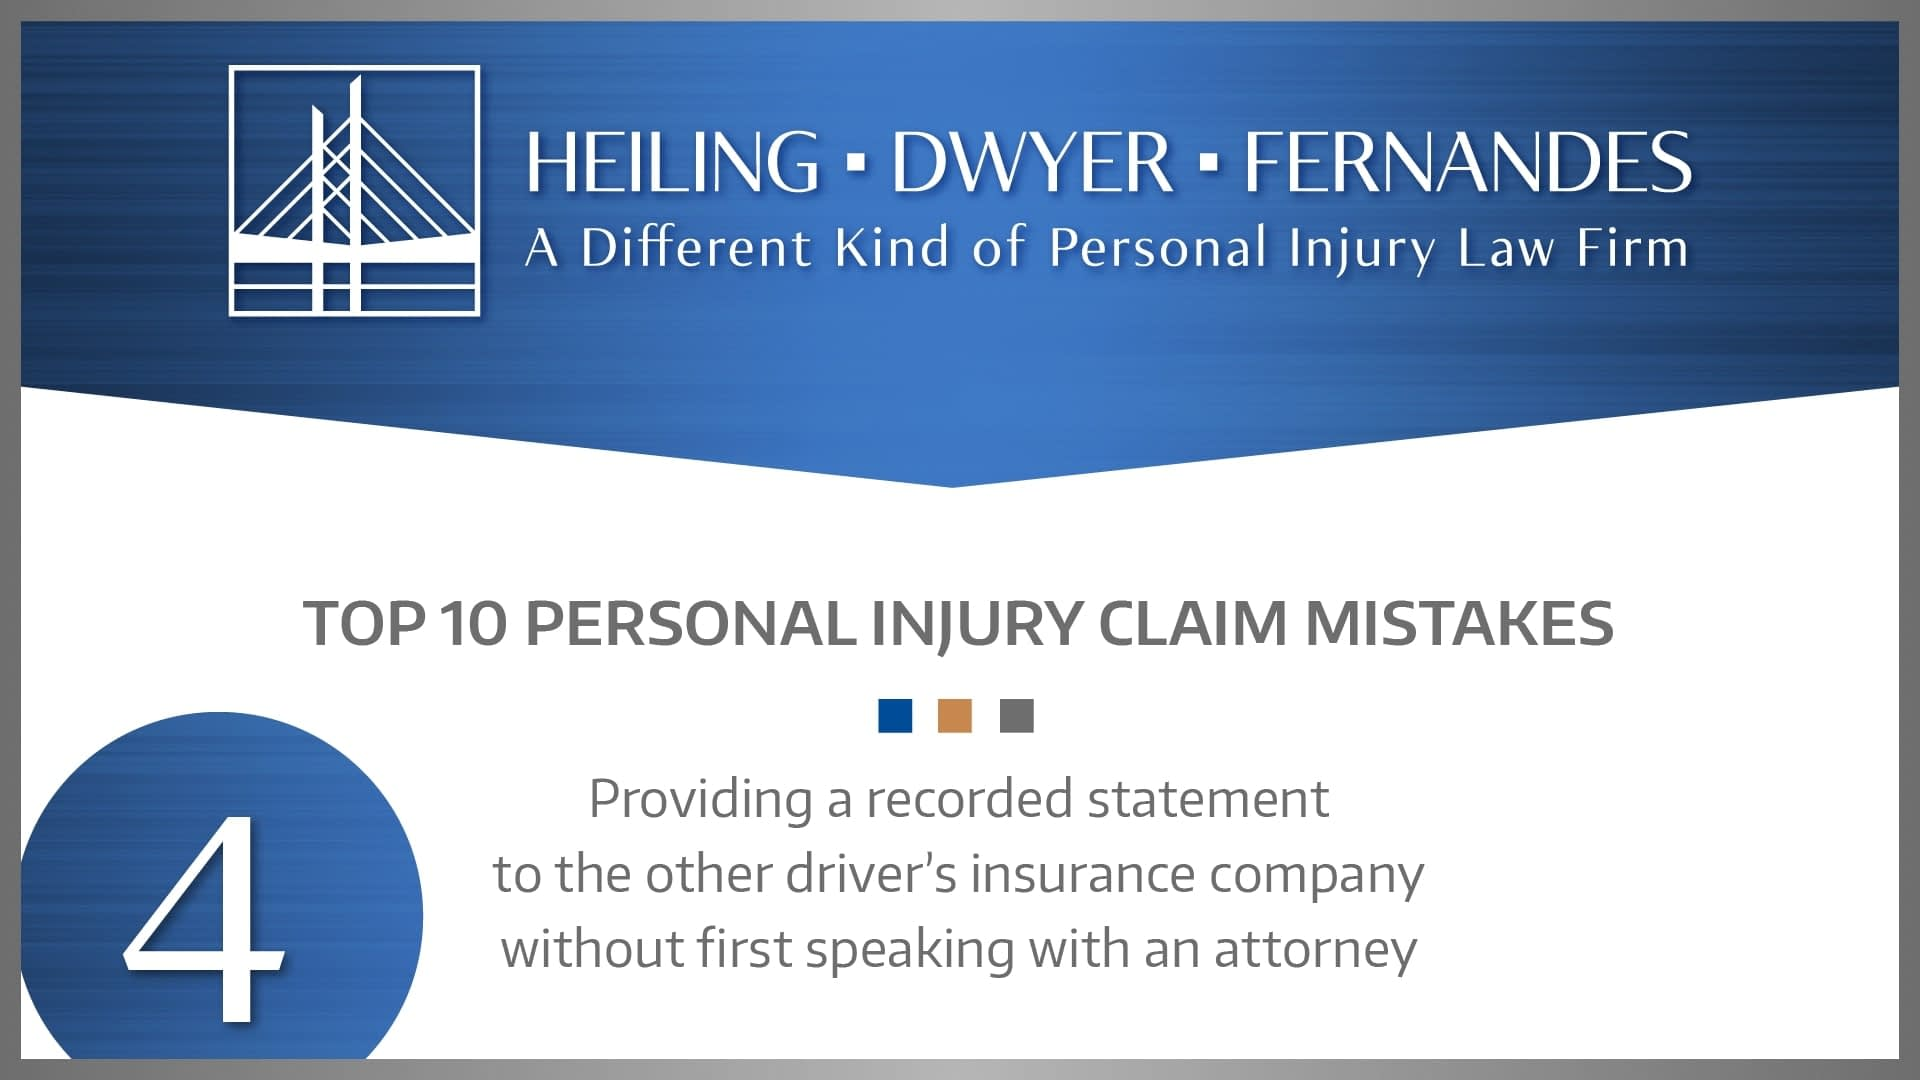 #4 MISTAKE: Providing a recorded statement to the other driver's insurance company without first speaking with an attorney